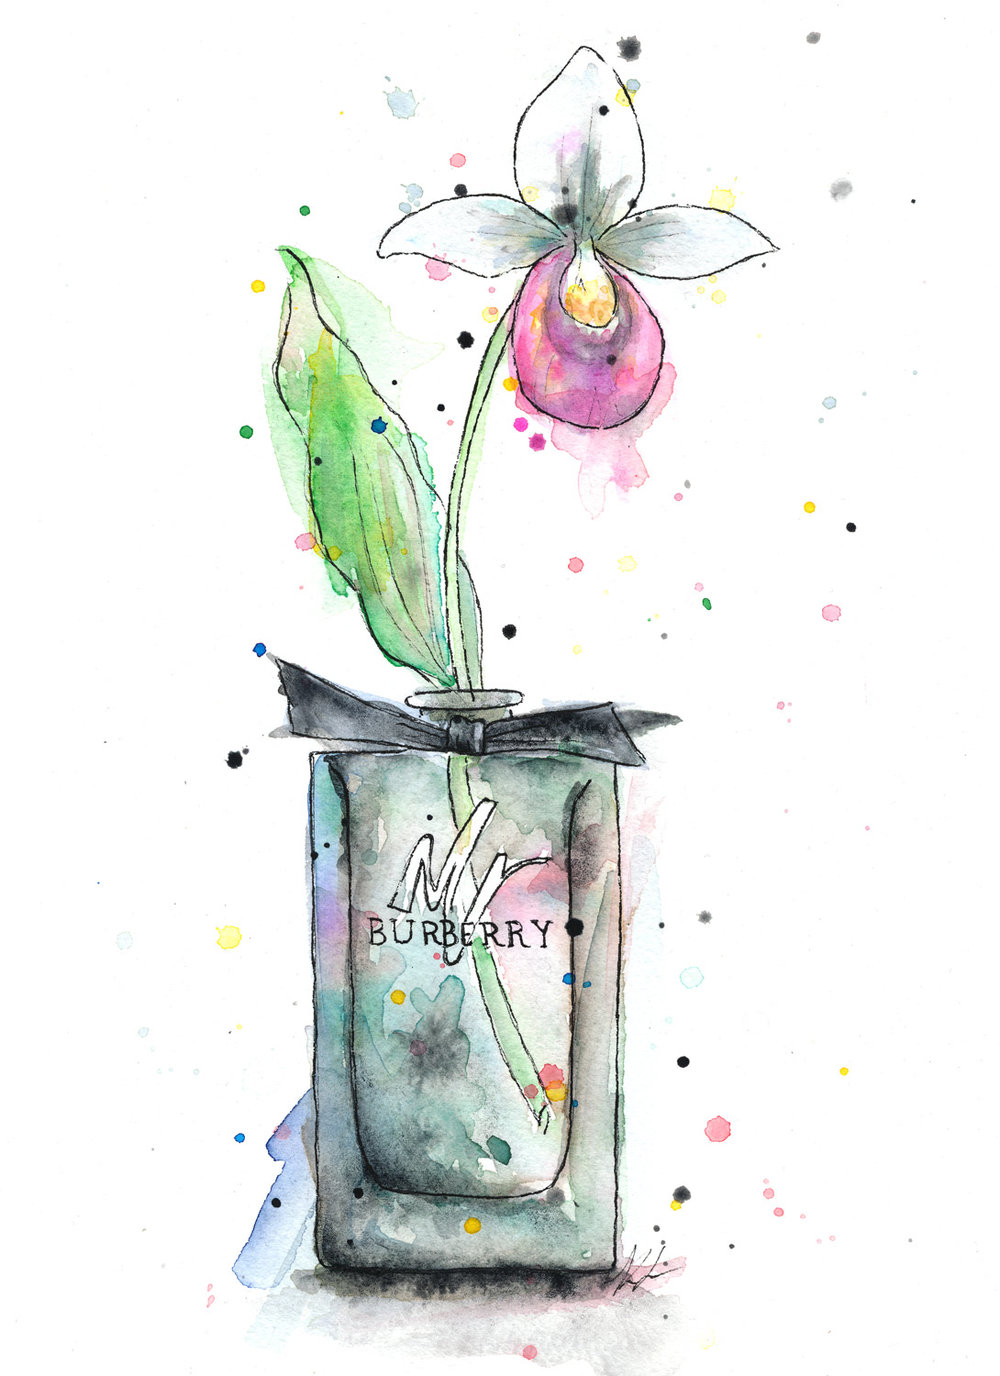 Benjamin-Edward-Mr-Burberry-Lady-Slipper-Cologne-Perfume-watercolour-illustration.jpg